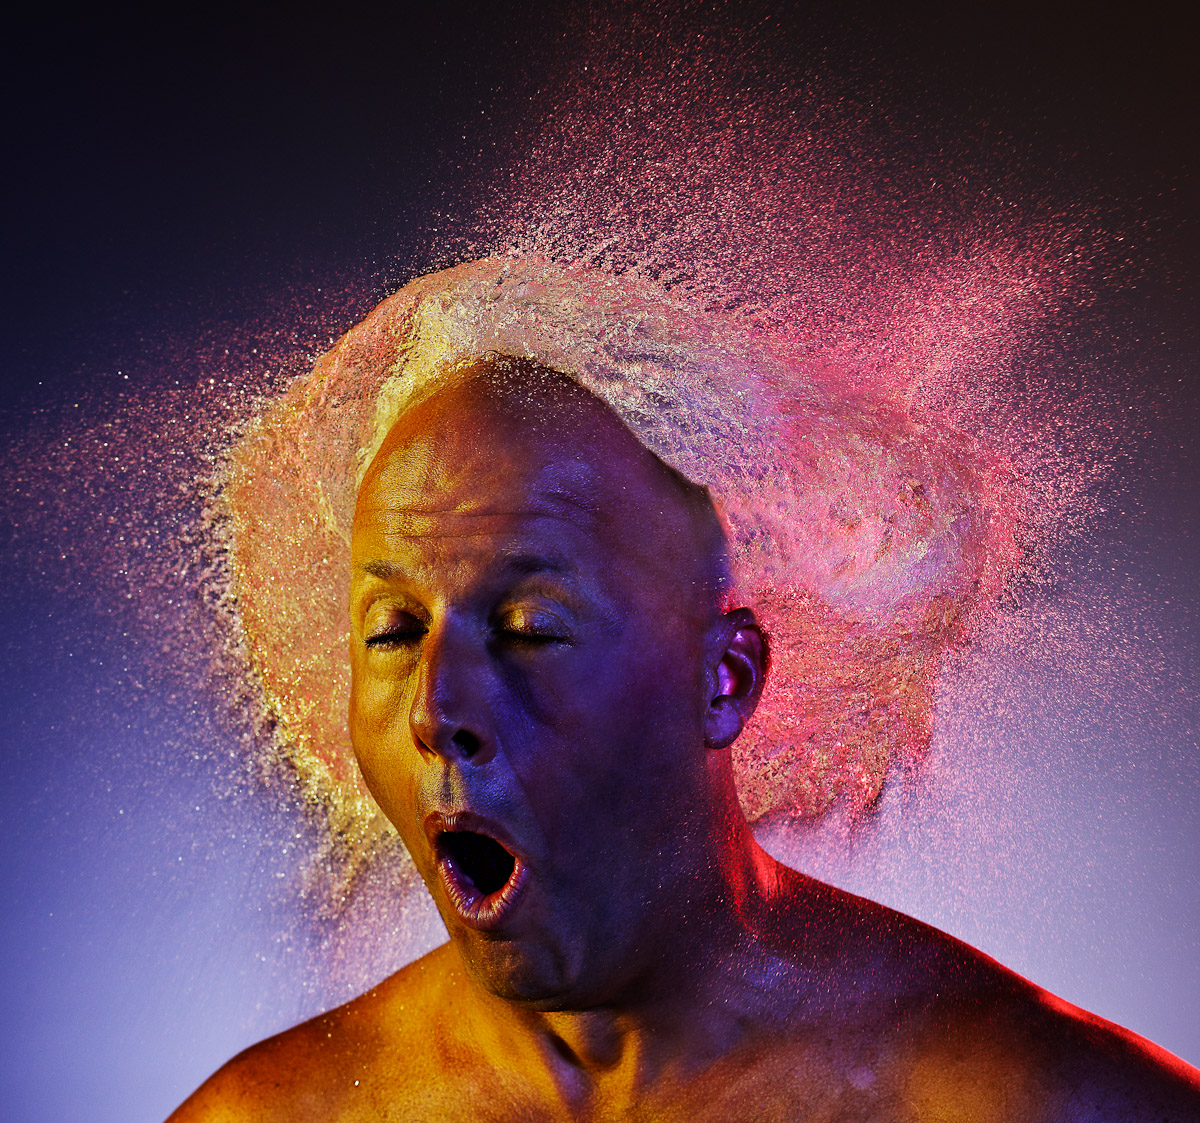 Water Wigs, by photographer Tim Tadder in Wired